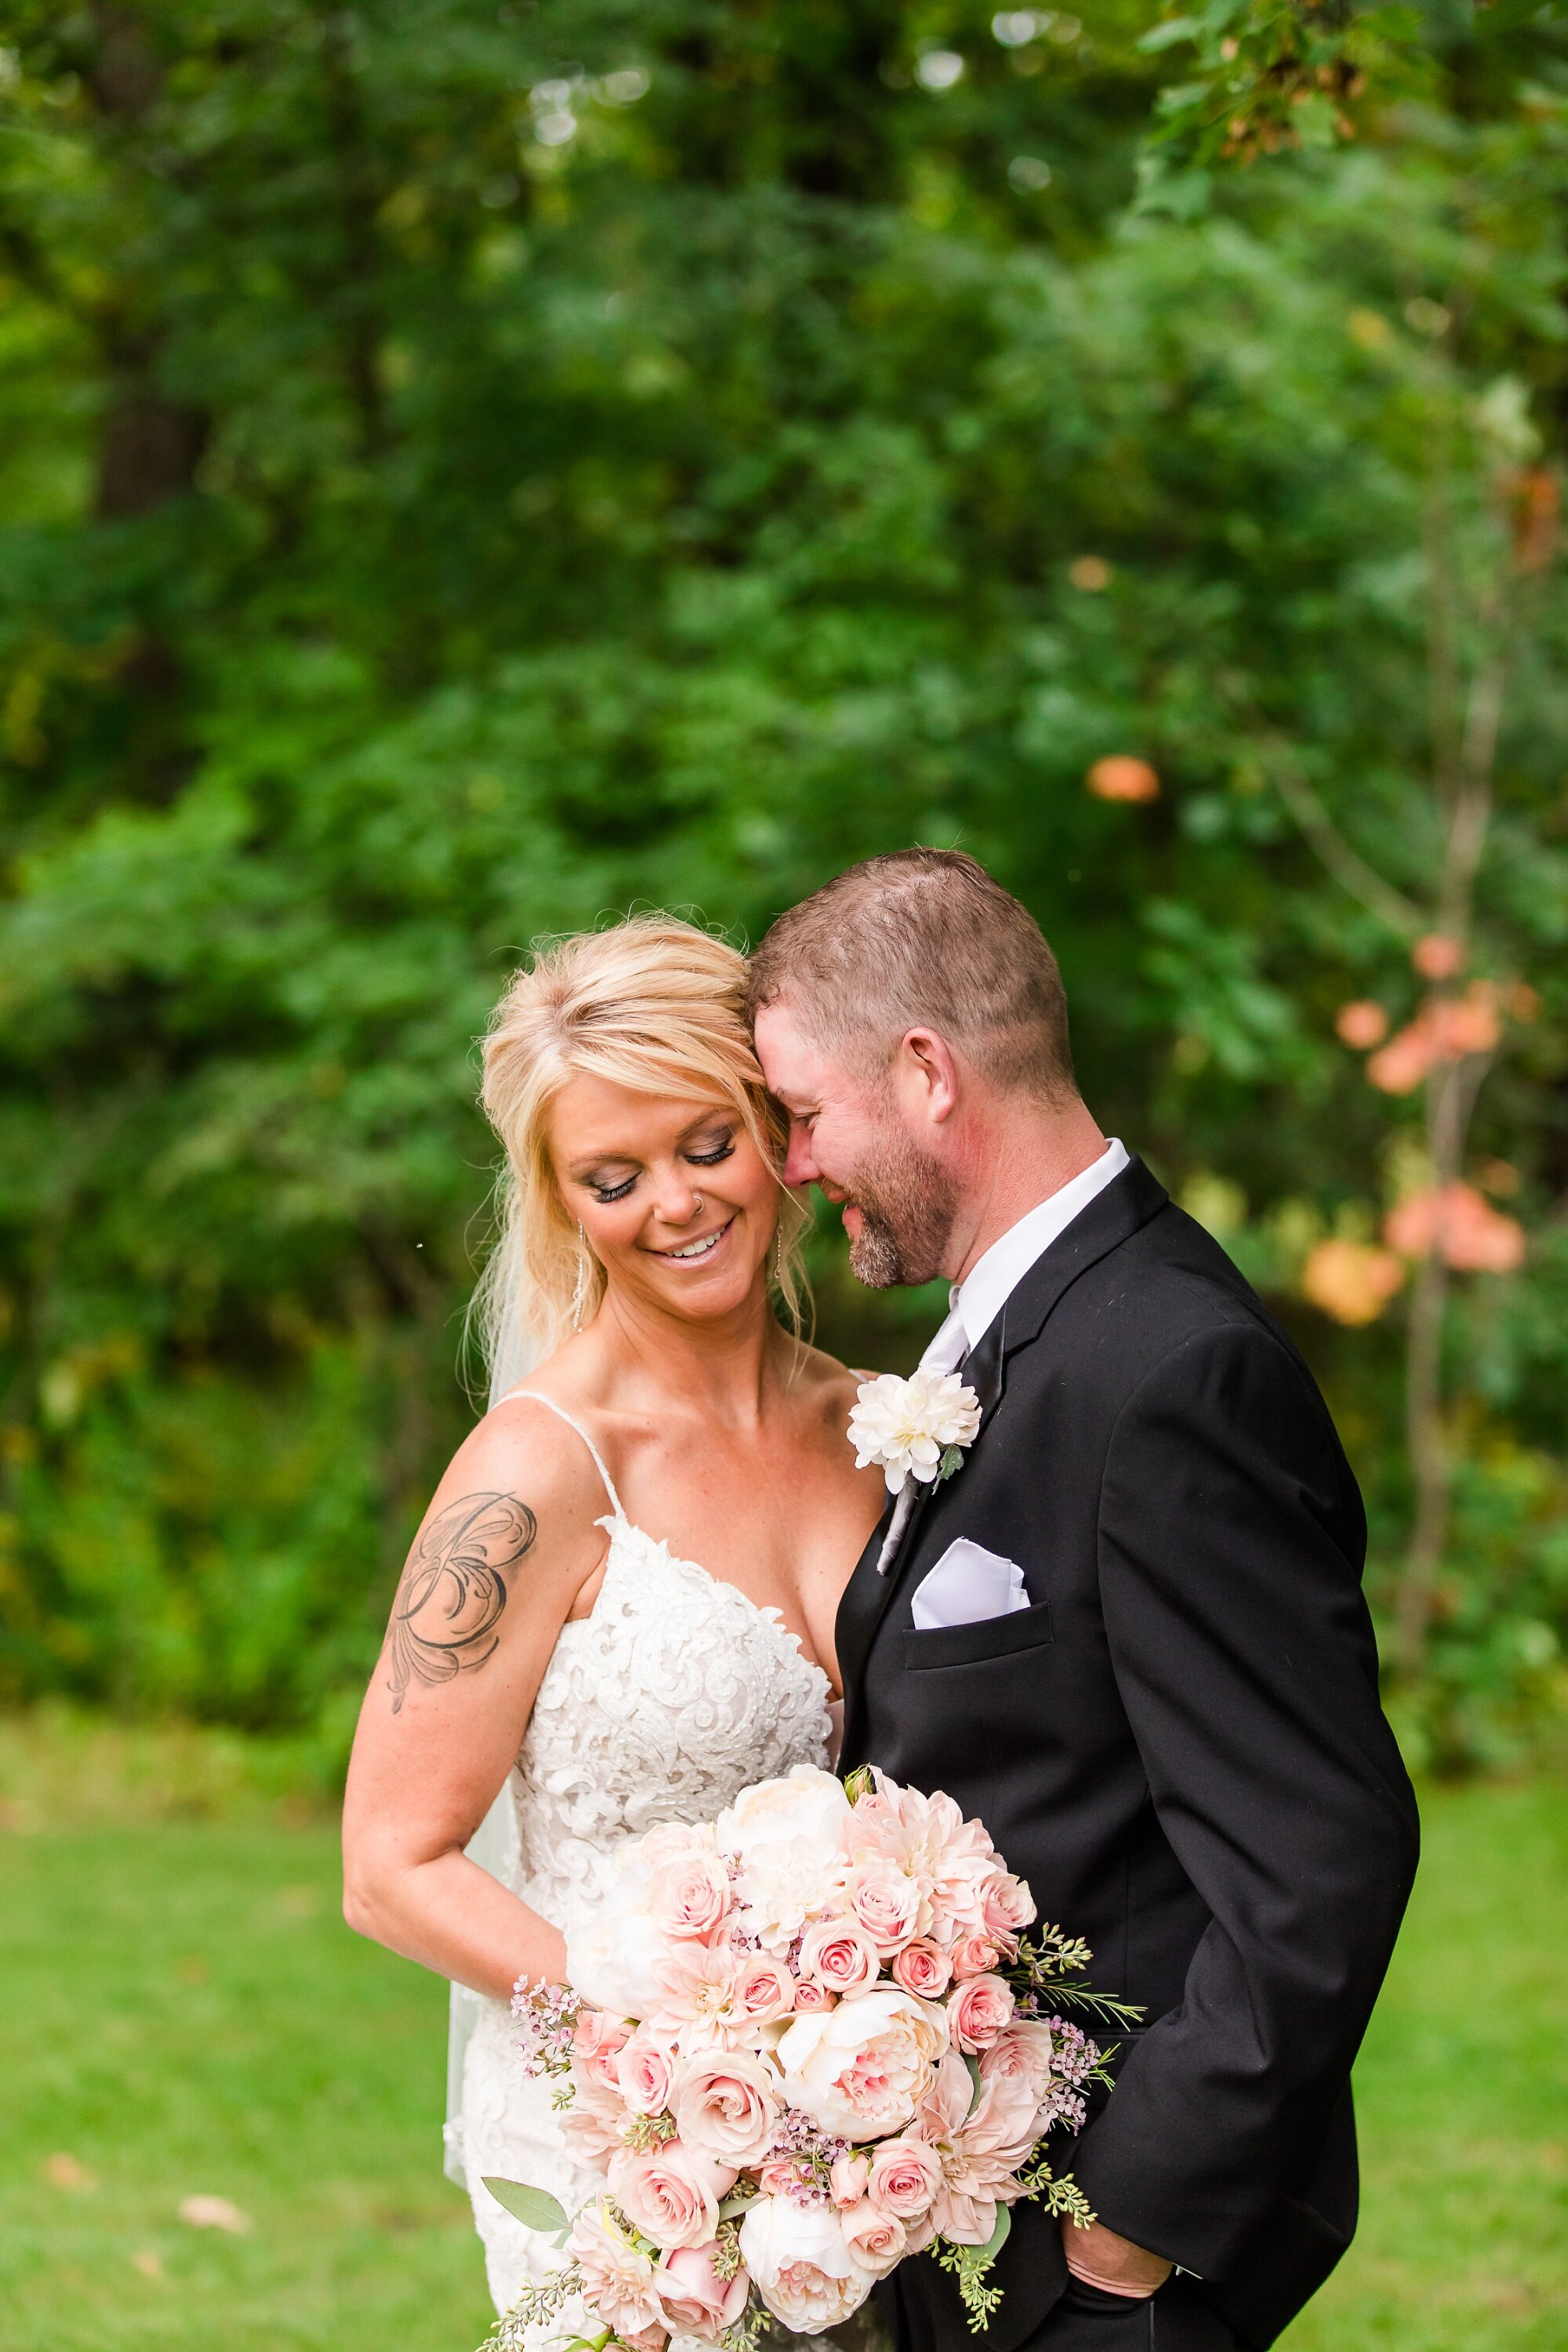 Amber Langerud Photography_Eagle Lake Rustic Styled Outdoor Wedding in Minnesota_6839-2.jpg